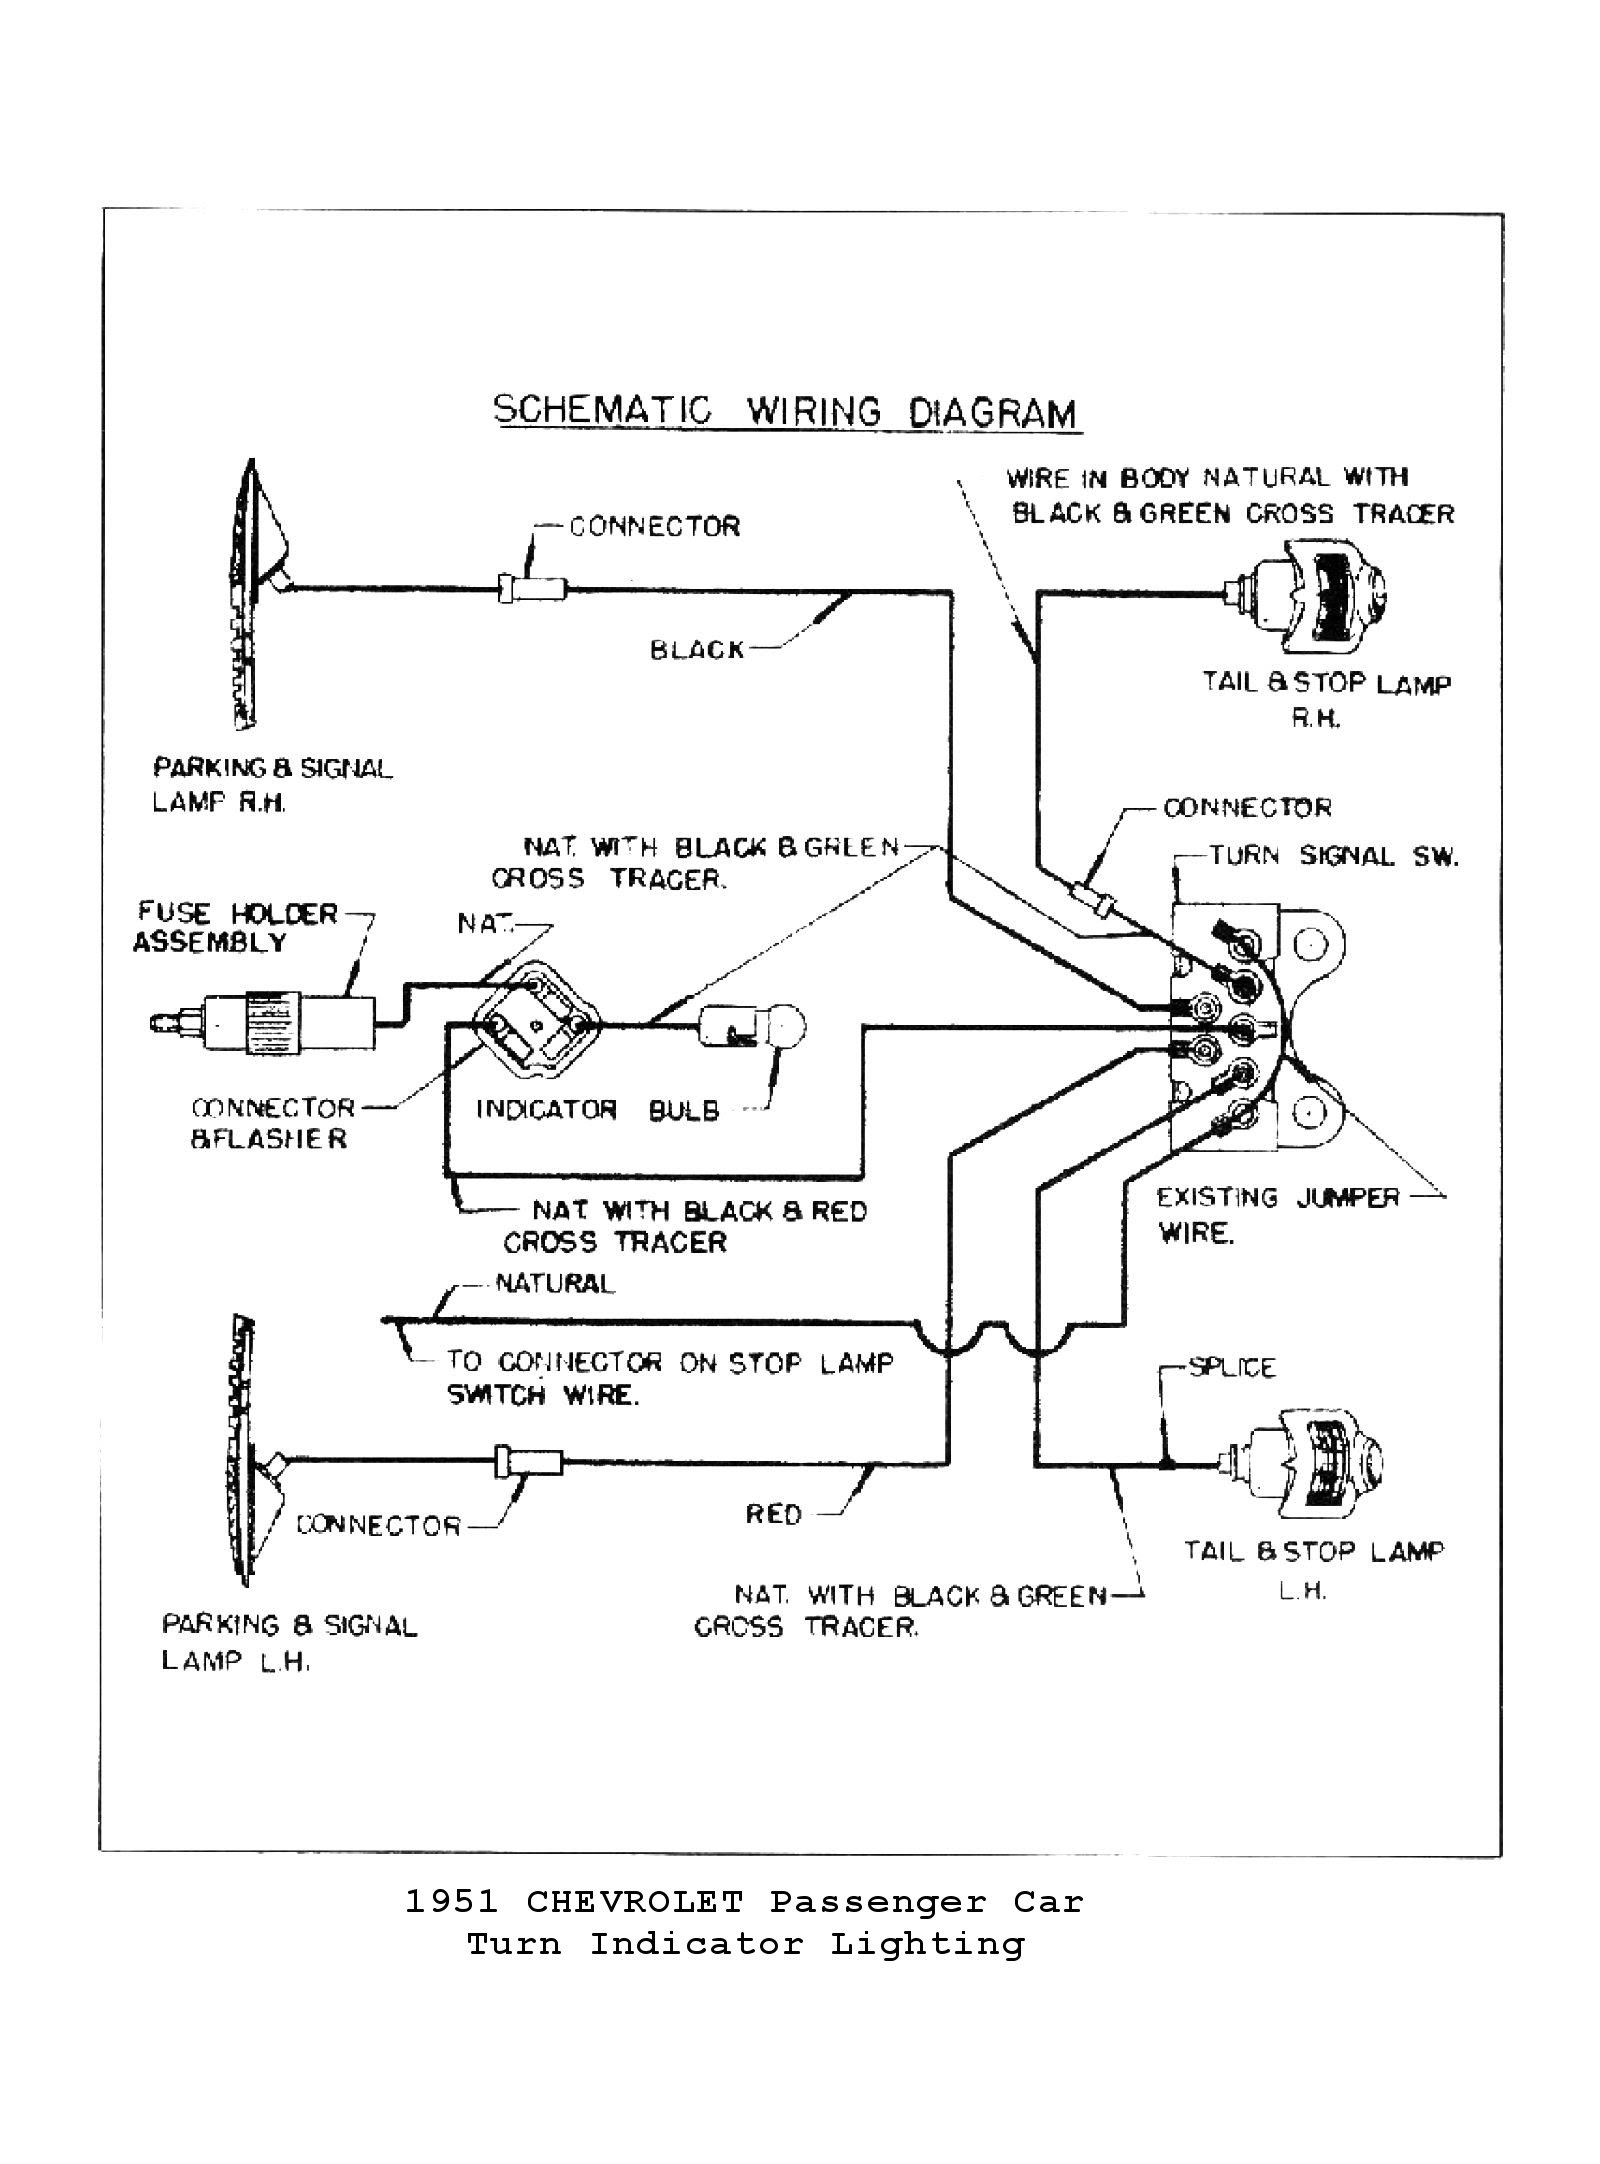 9c4459 1956 Farmall Cub Wiring Diagram Schematic Wiring Library